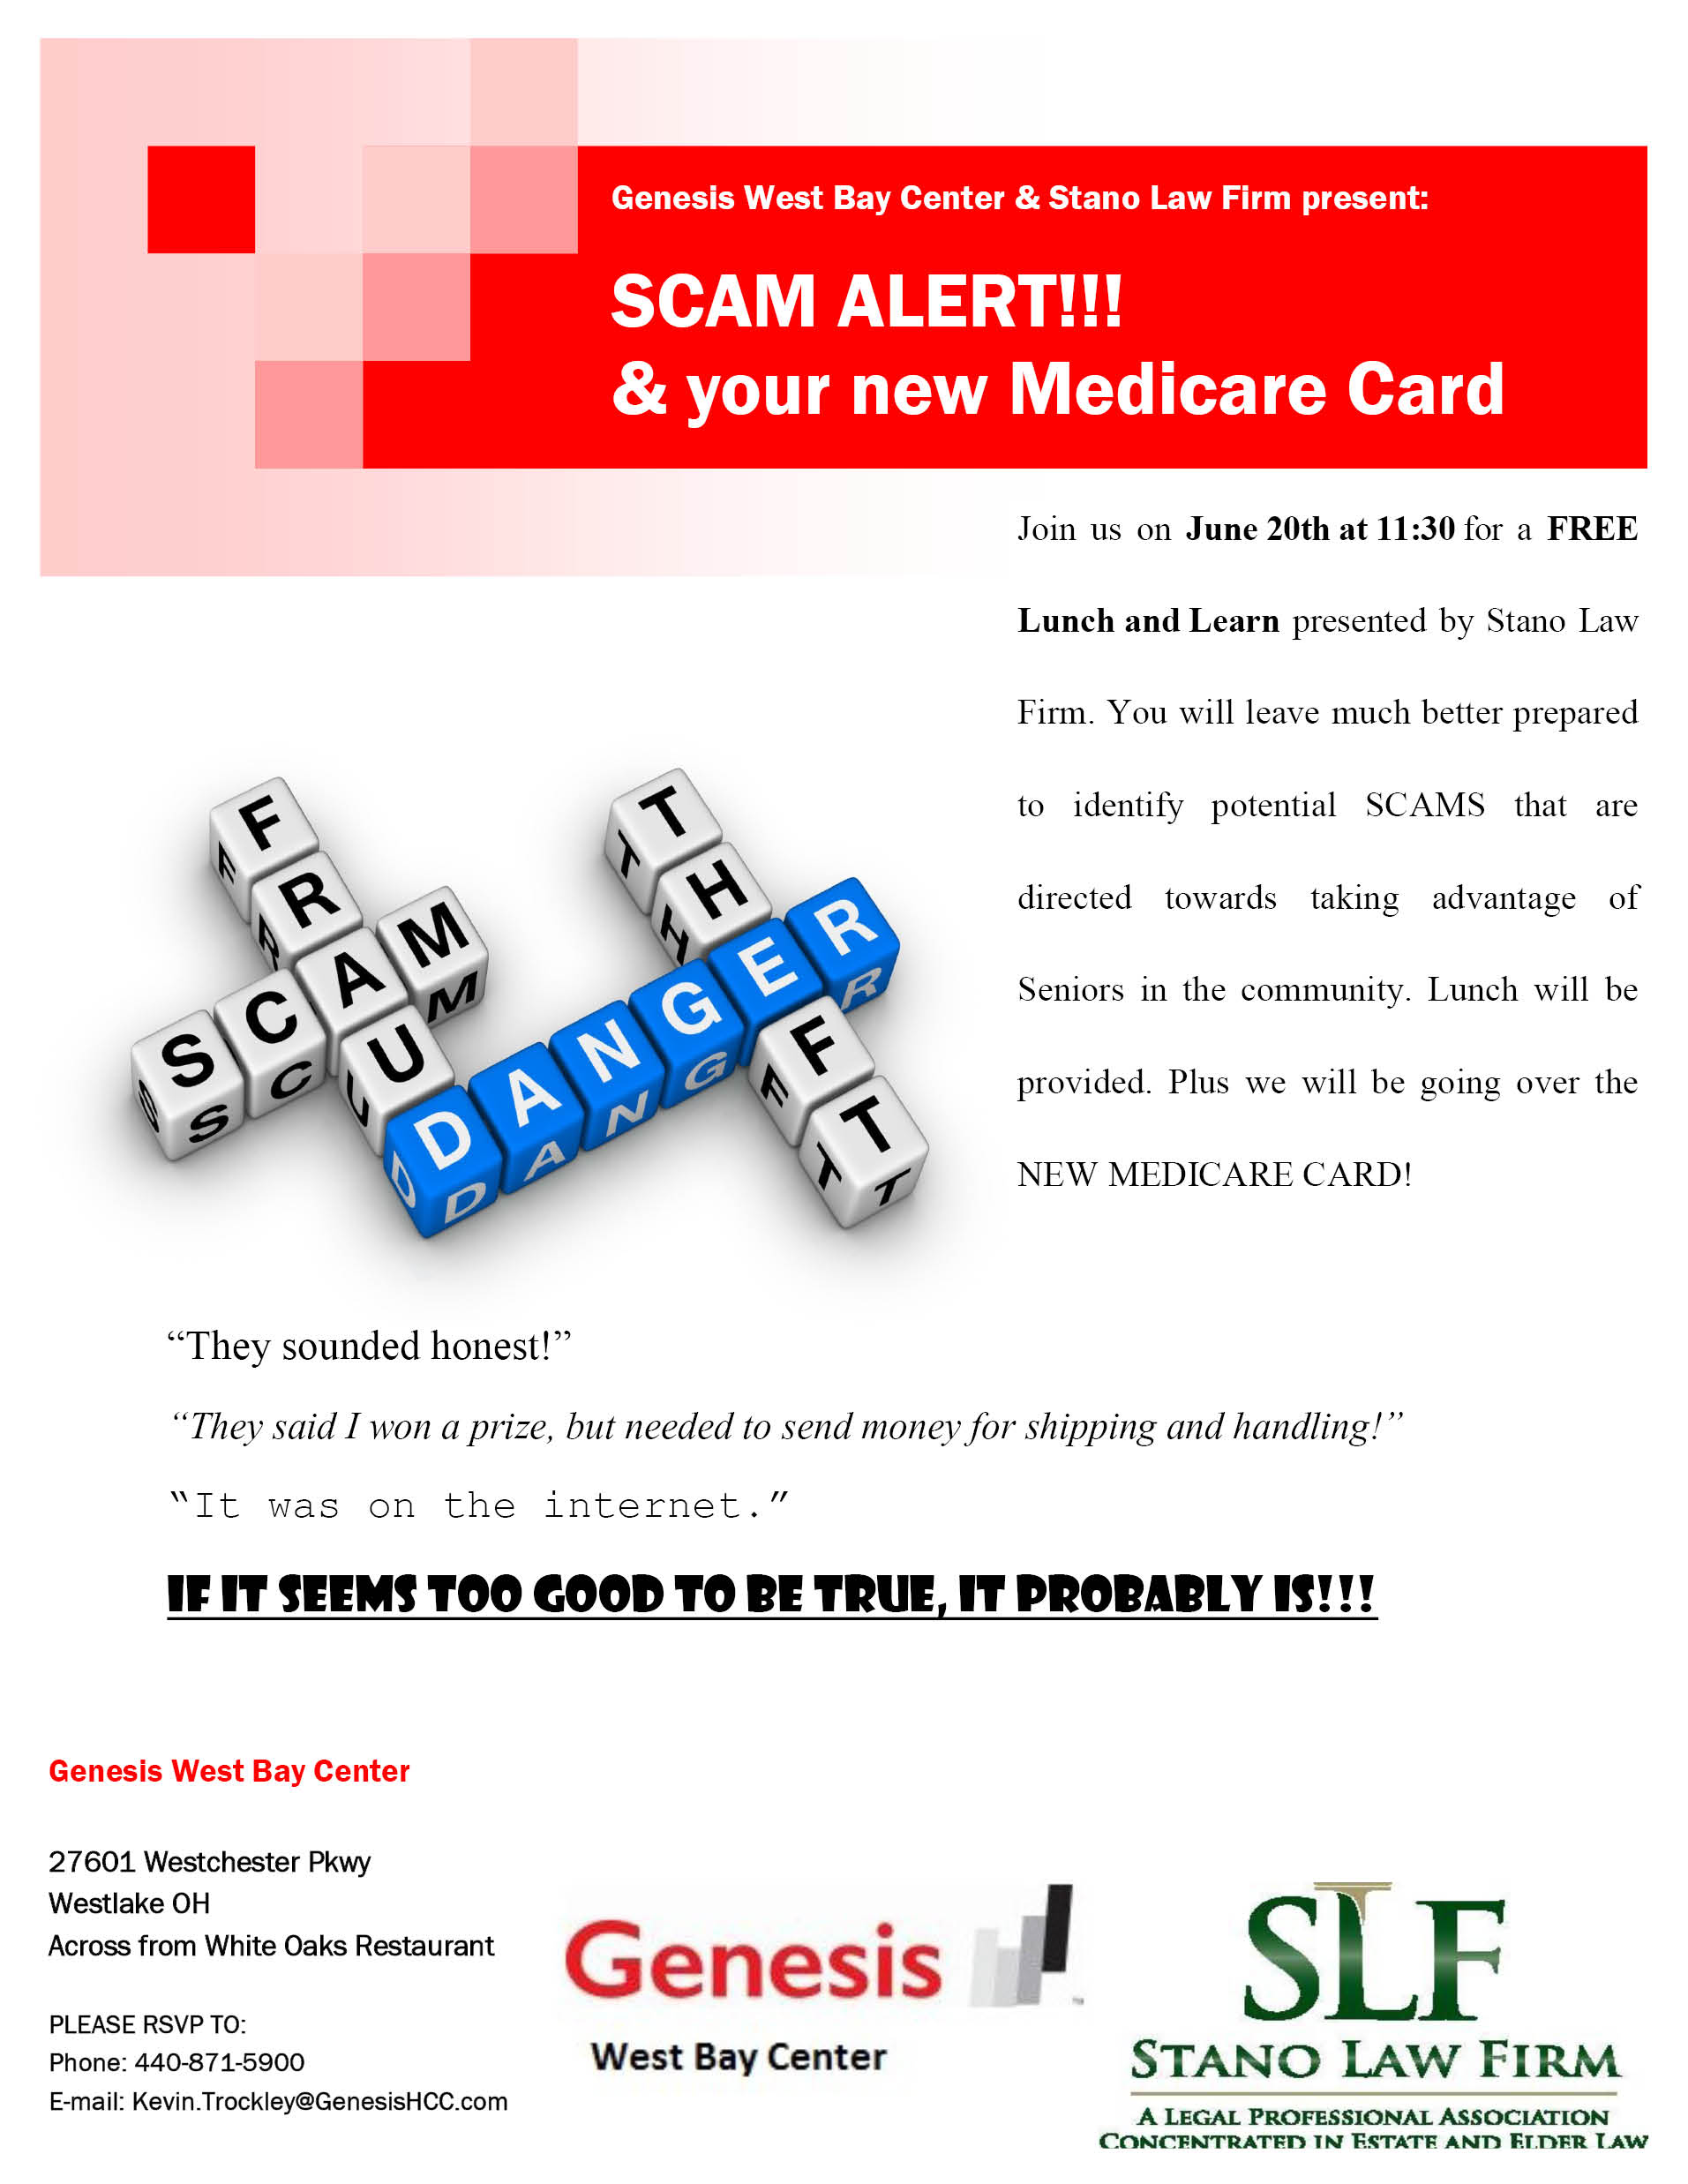 Genesis West Bay Center & Stano Law Firm Present Scam Alert and